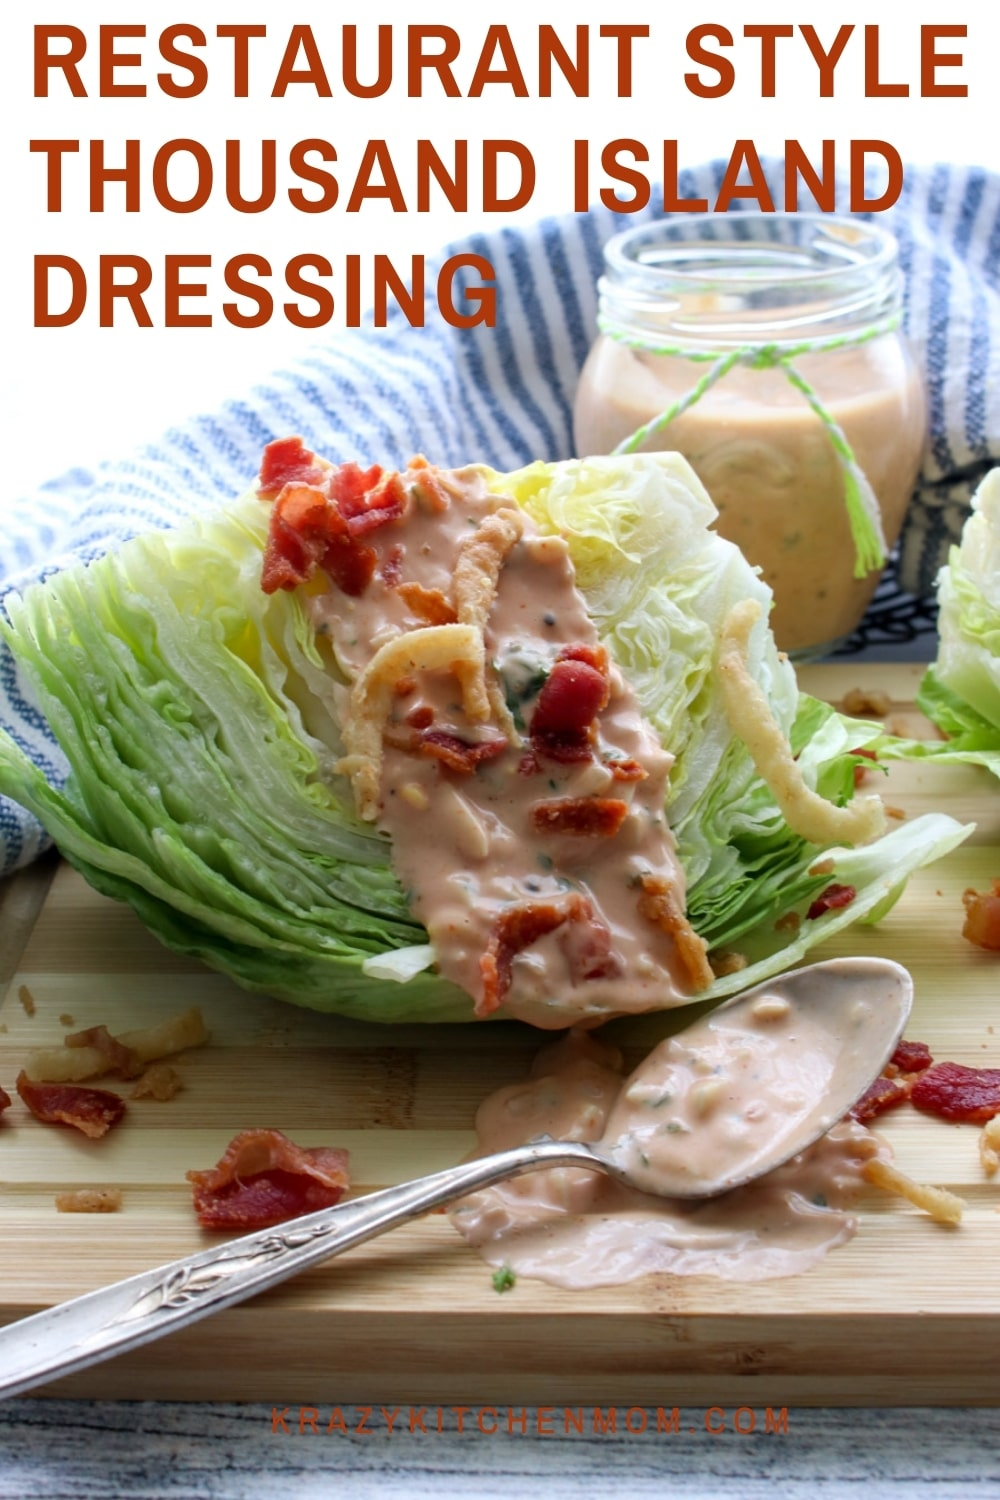 No need to buy salad dressing when you can make a flavor-packed dressing in just minutes using everyday pantry ingredients. via @krazykitchenmom